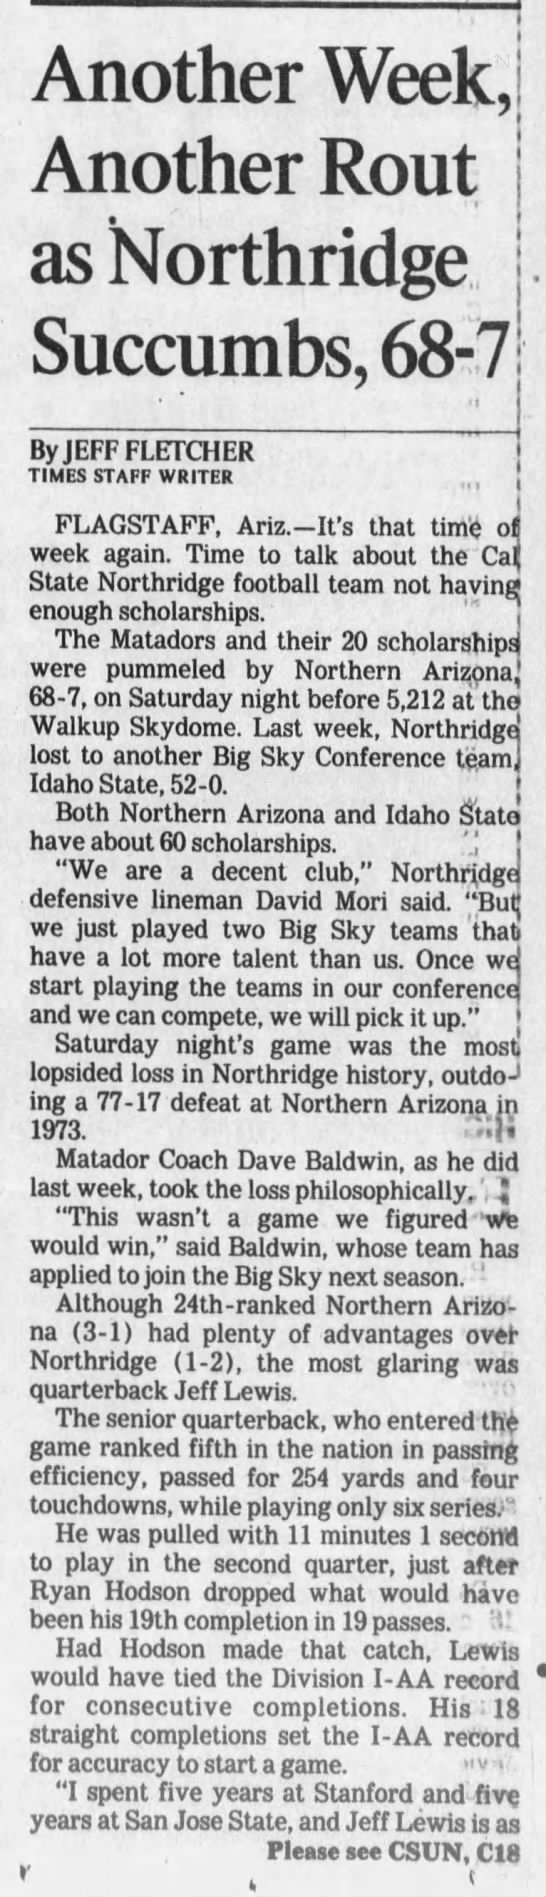 CSUN 19950924 Another Week Another Rout as Northridge Succumbs -